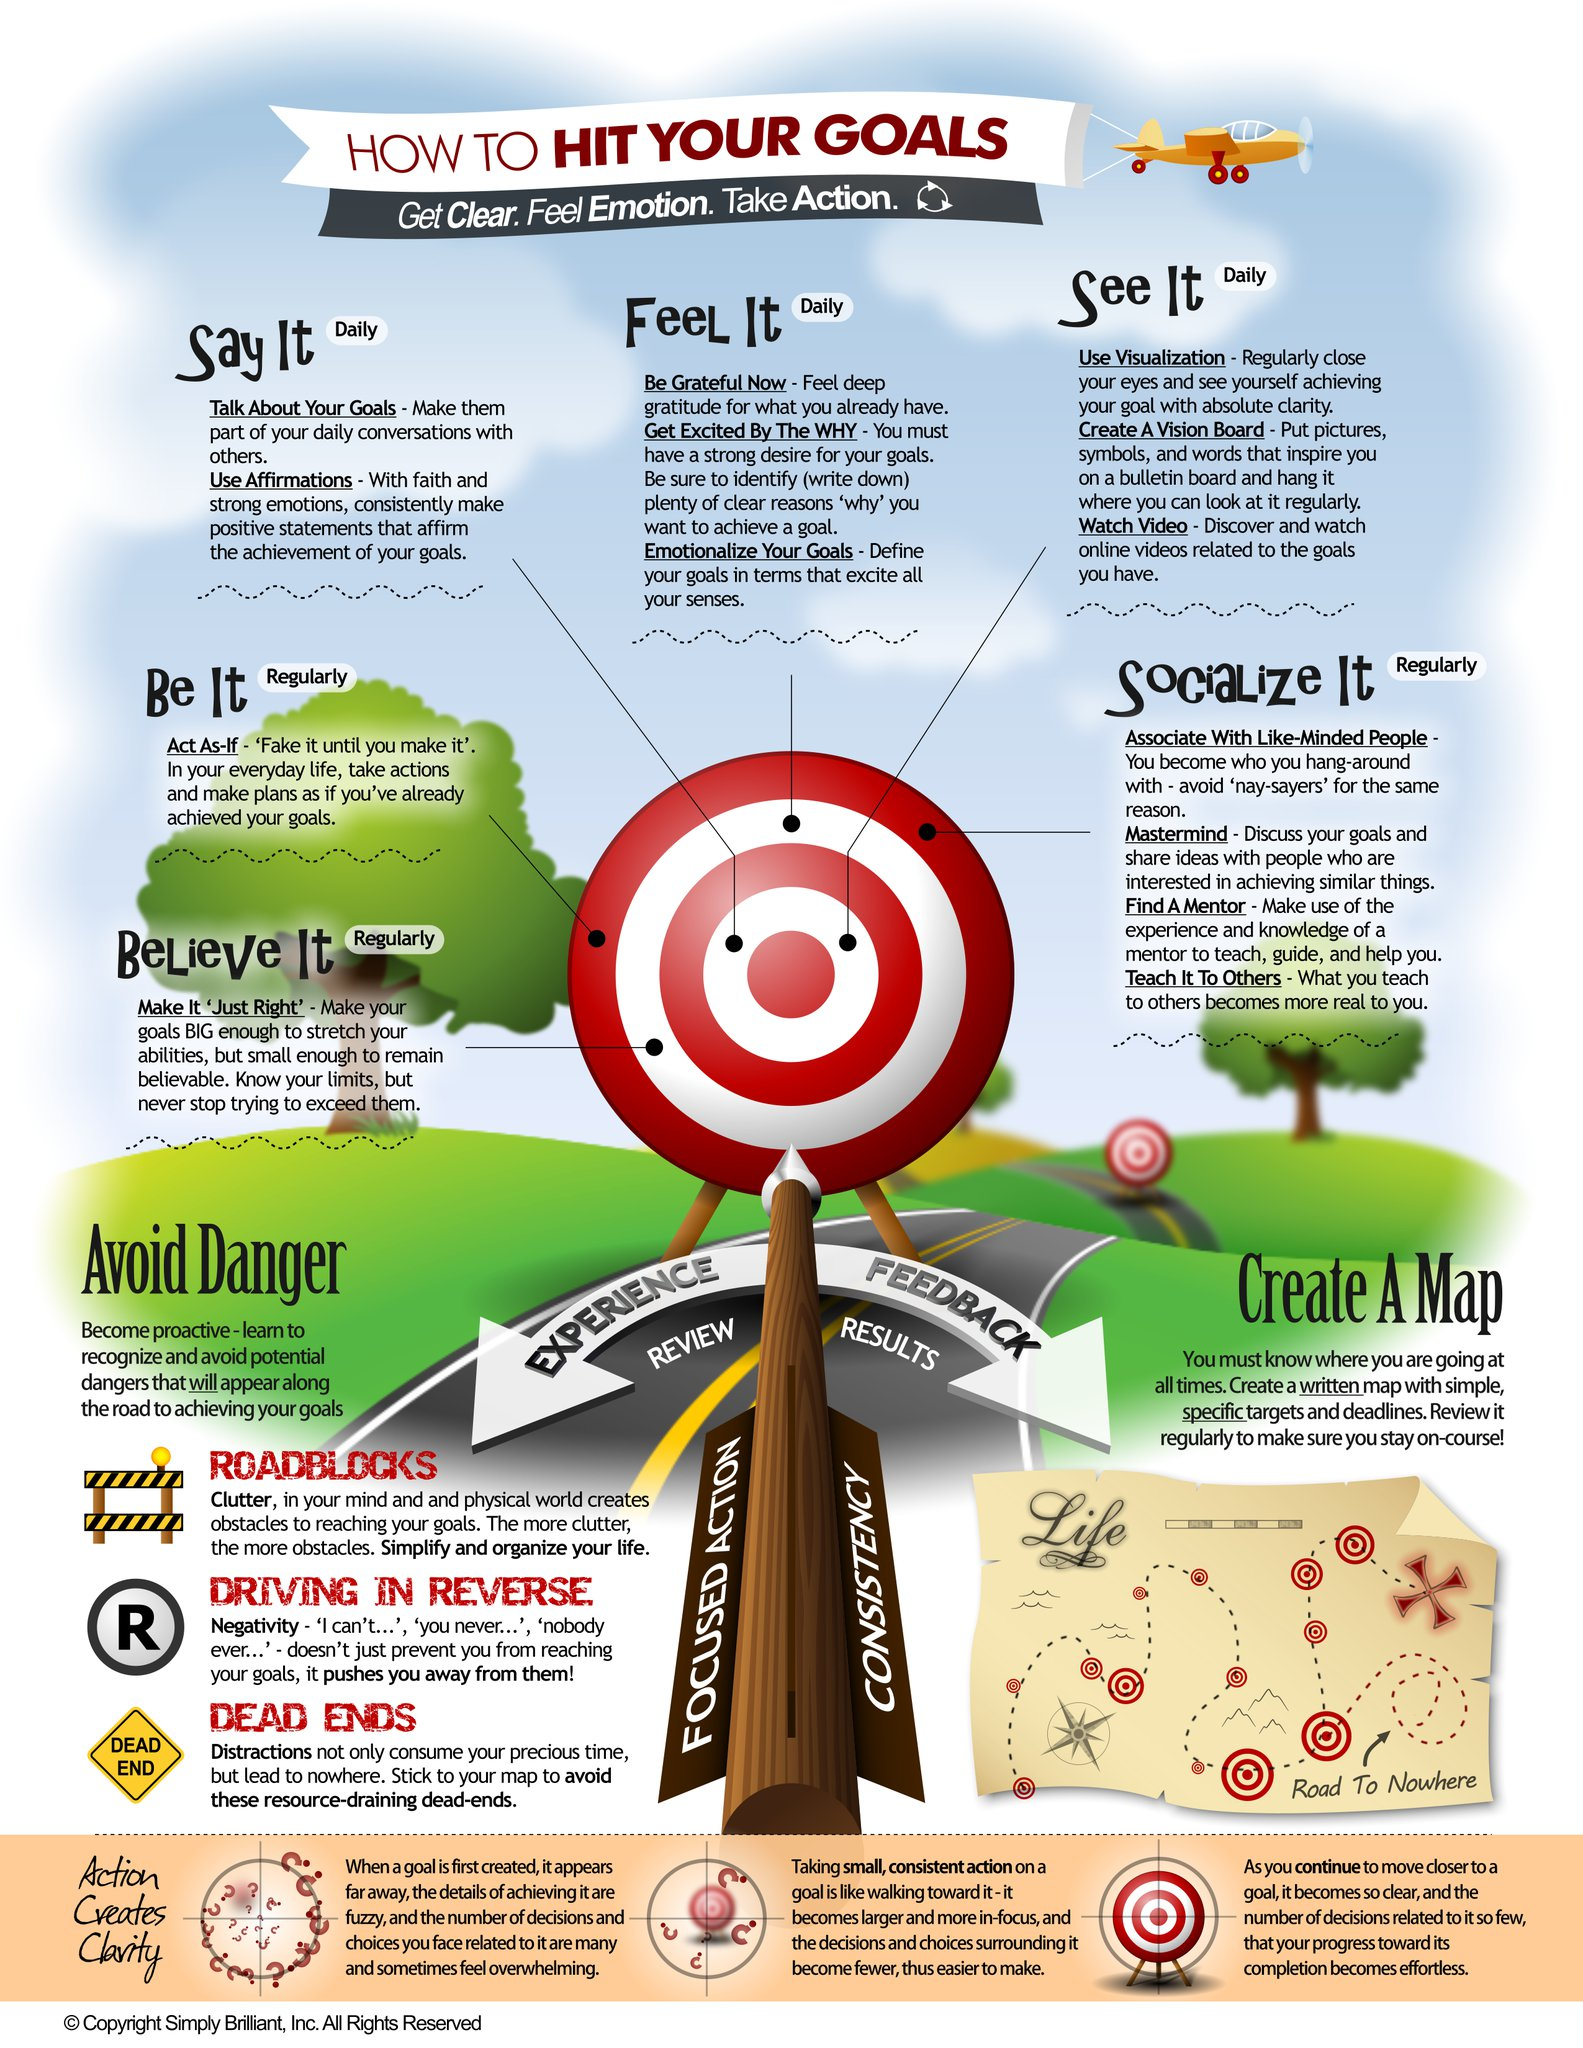 How To Hit Your Goals Infographic